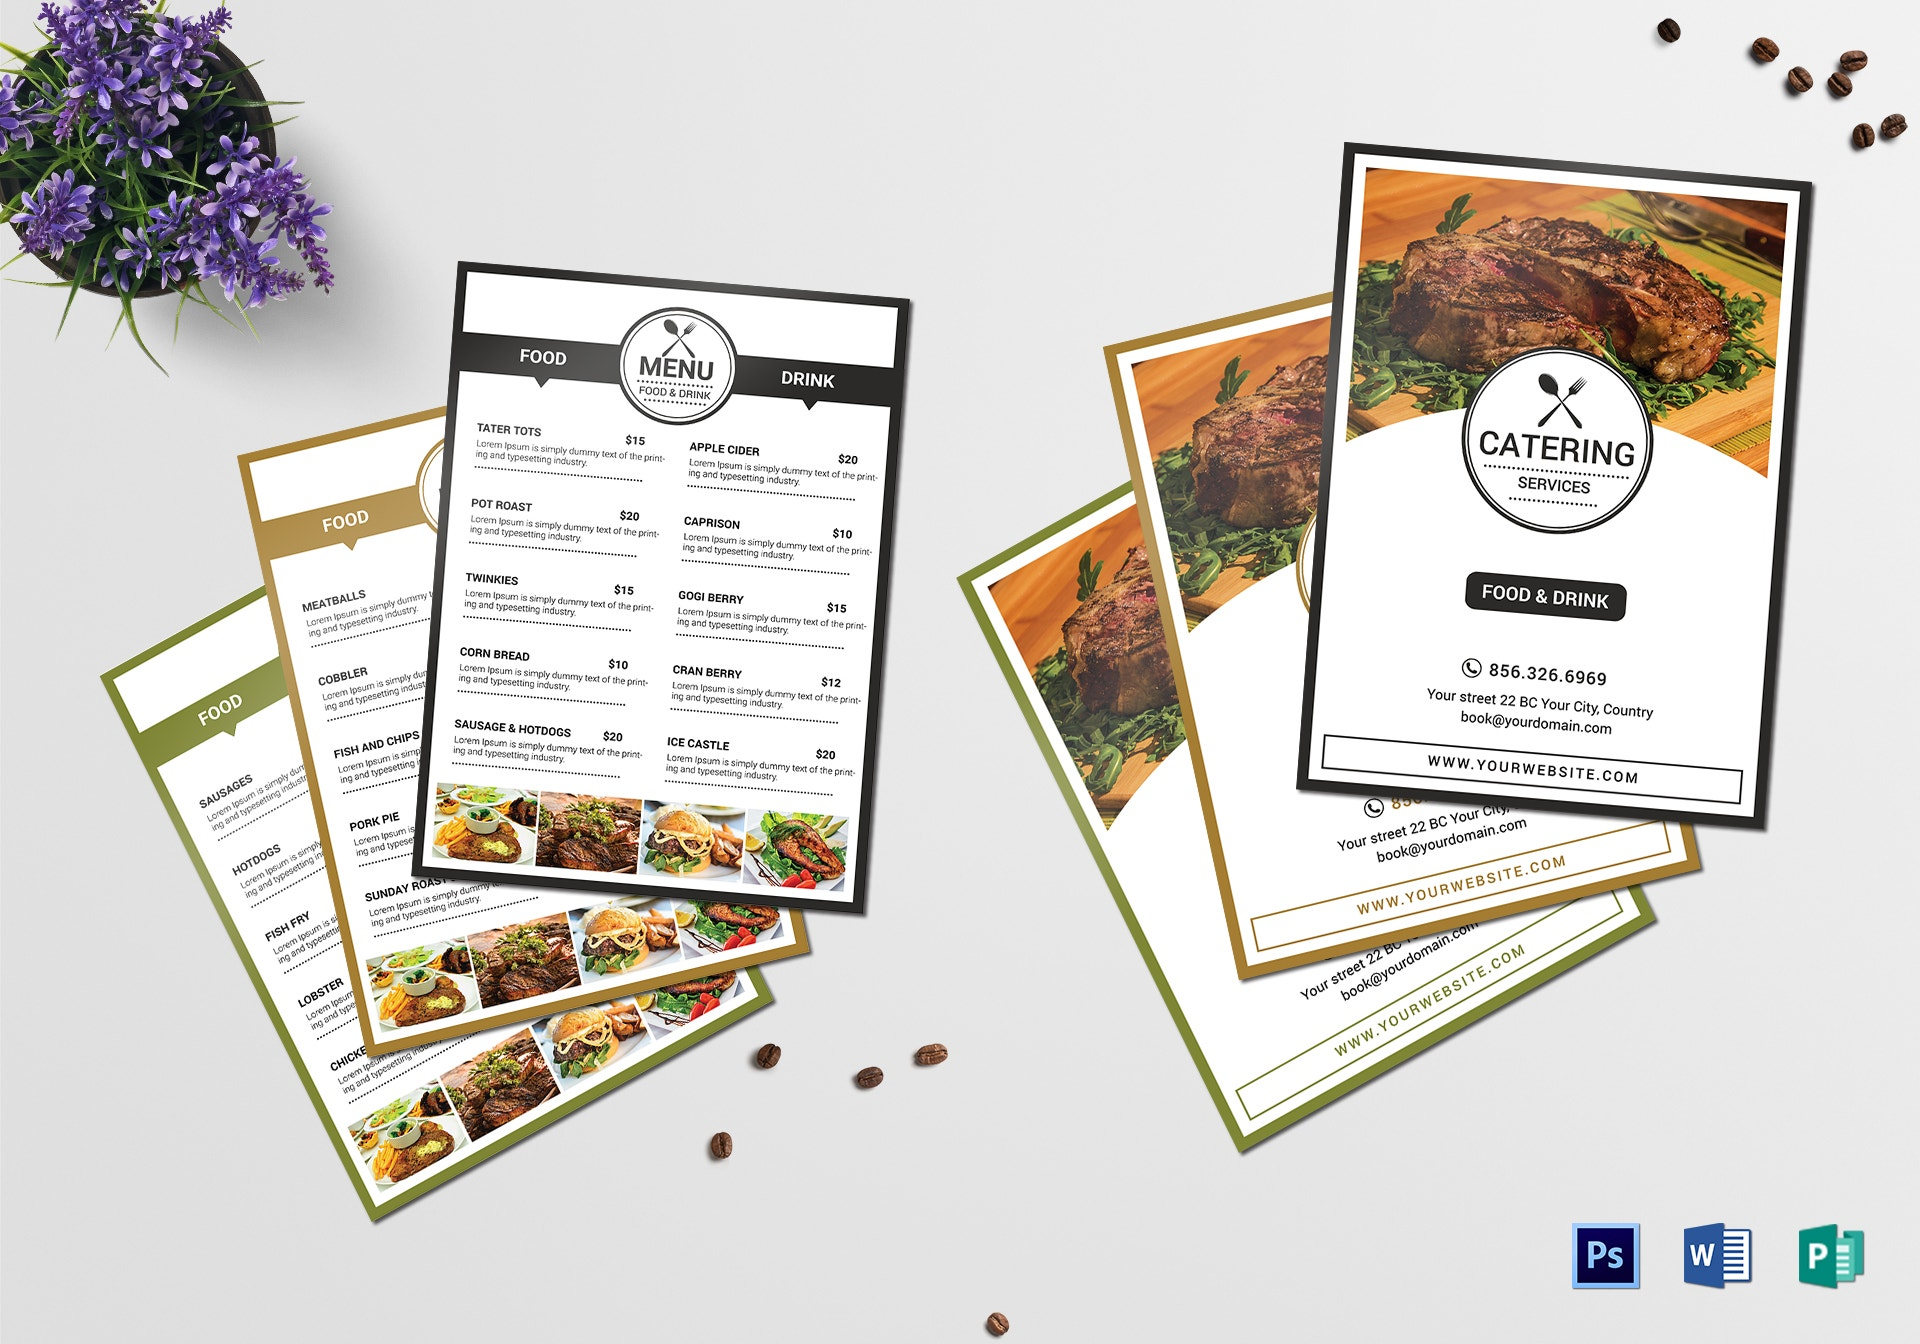 catering services food menu example